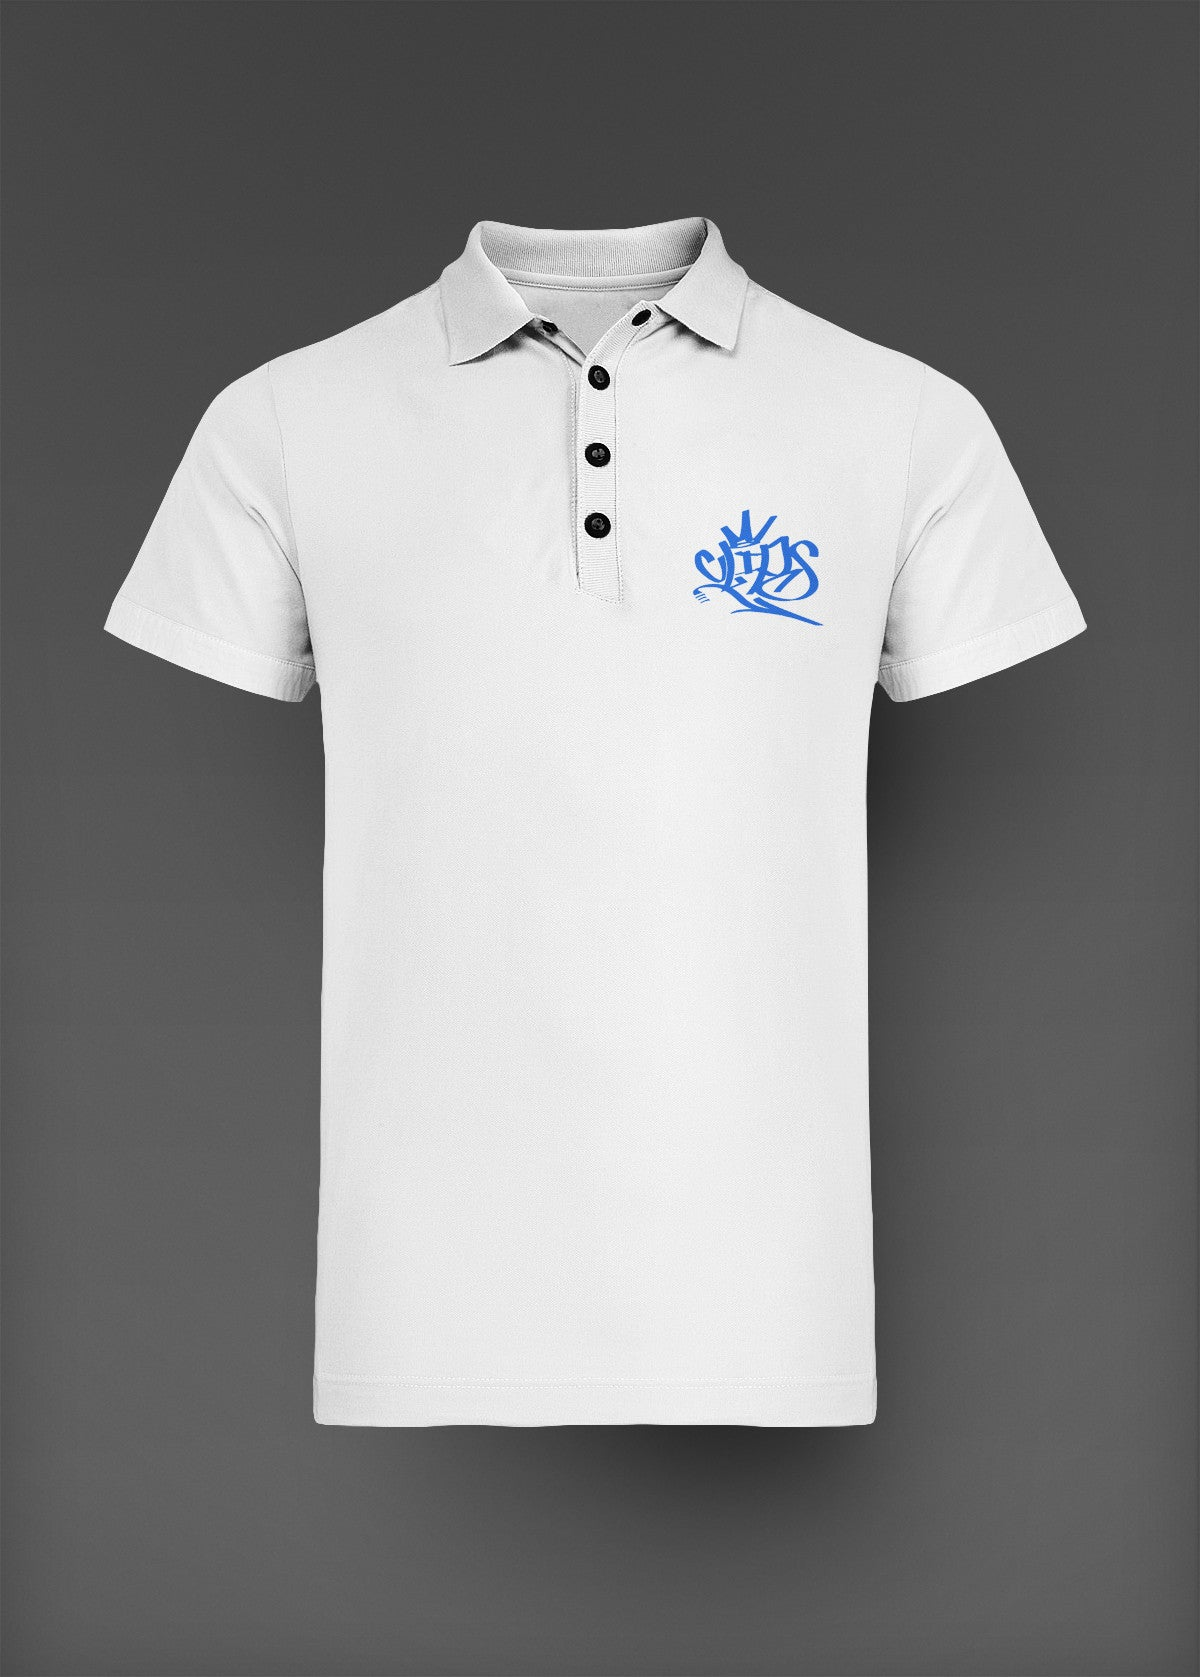 Mens Clips Polo - White W/ Blue Logo